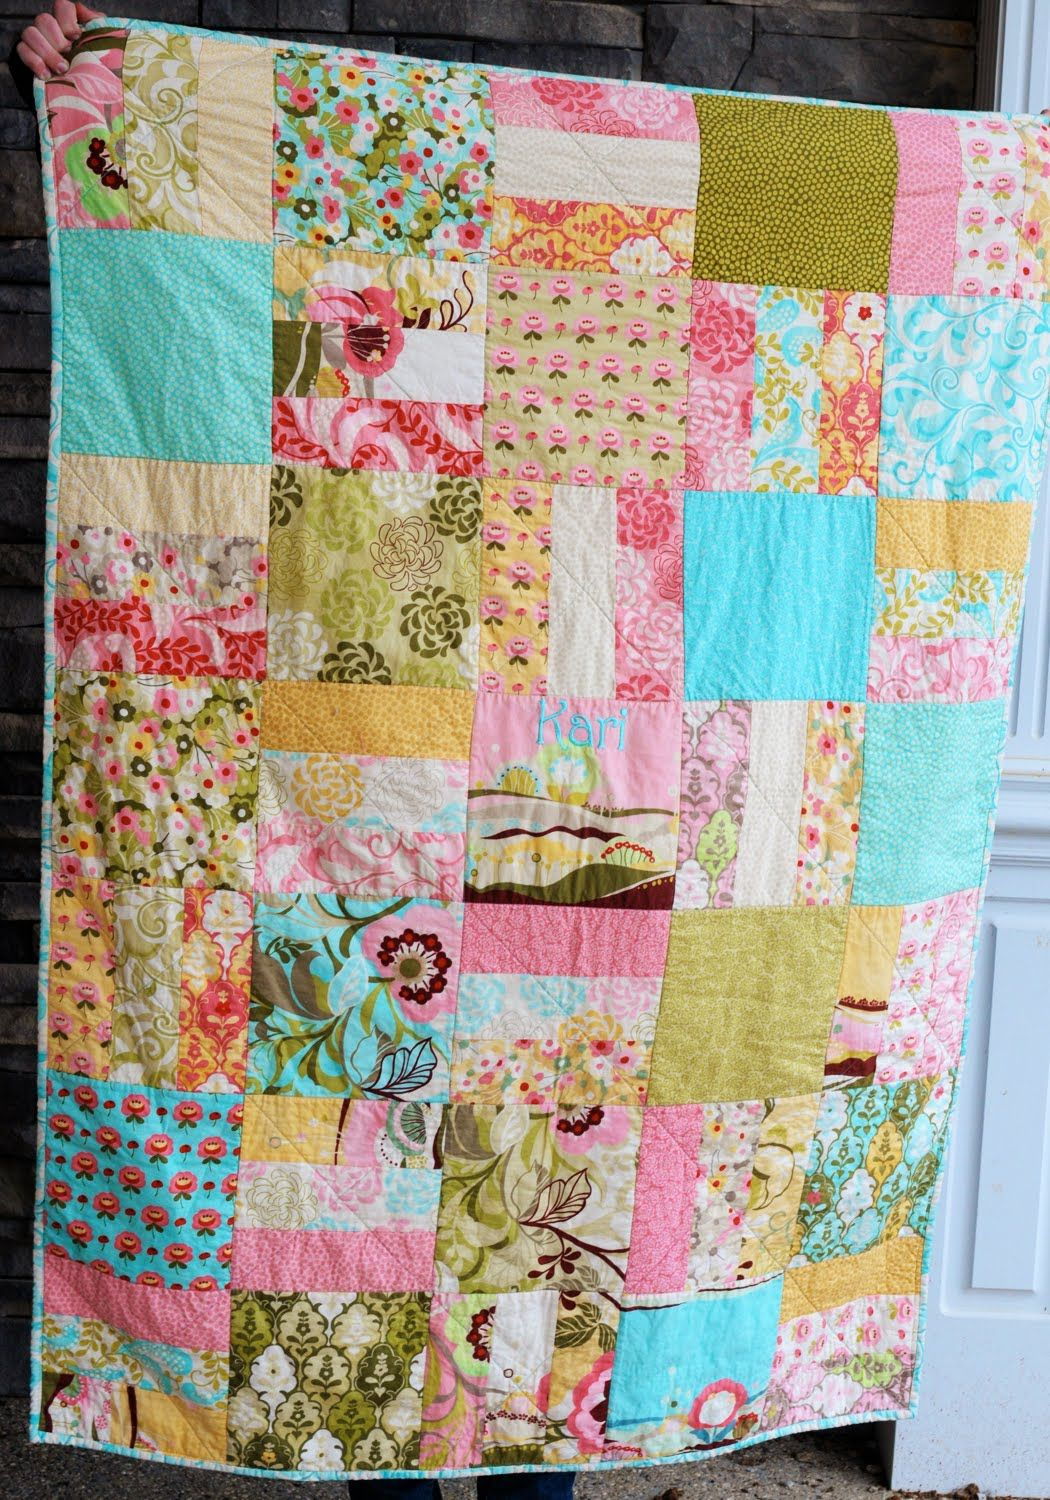 Snuggle Quilt Moda Blog Backed With A Soft Fluffy